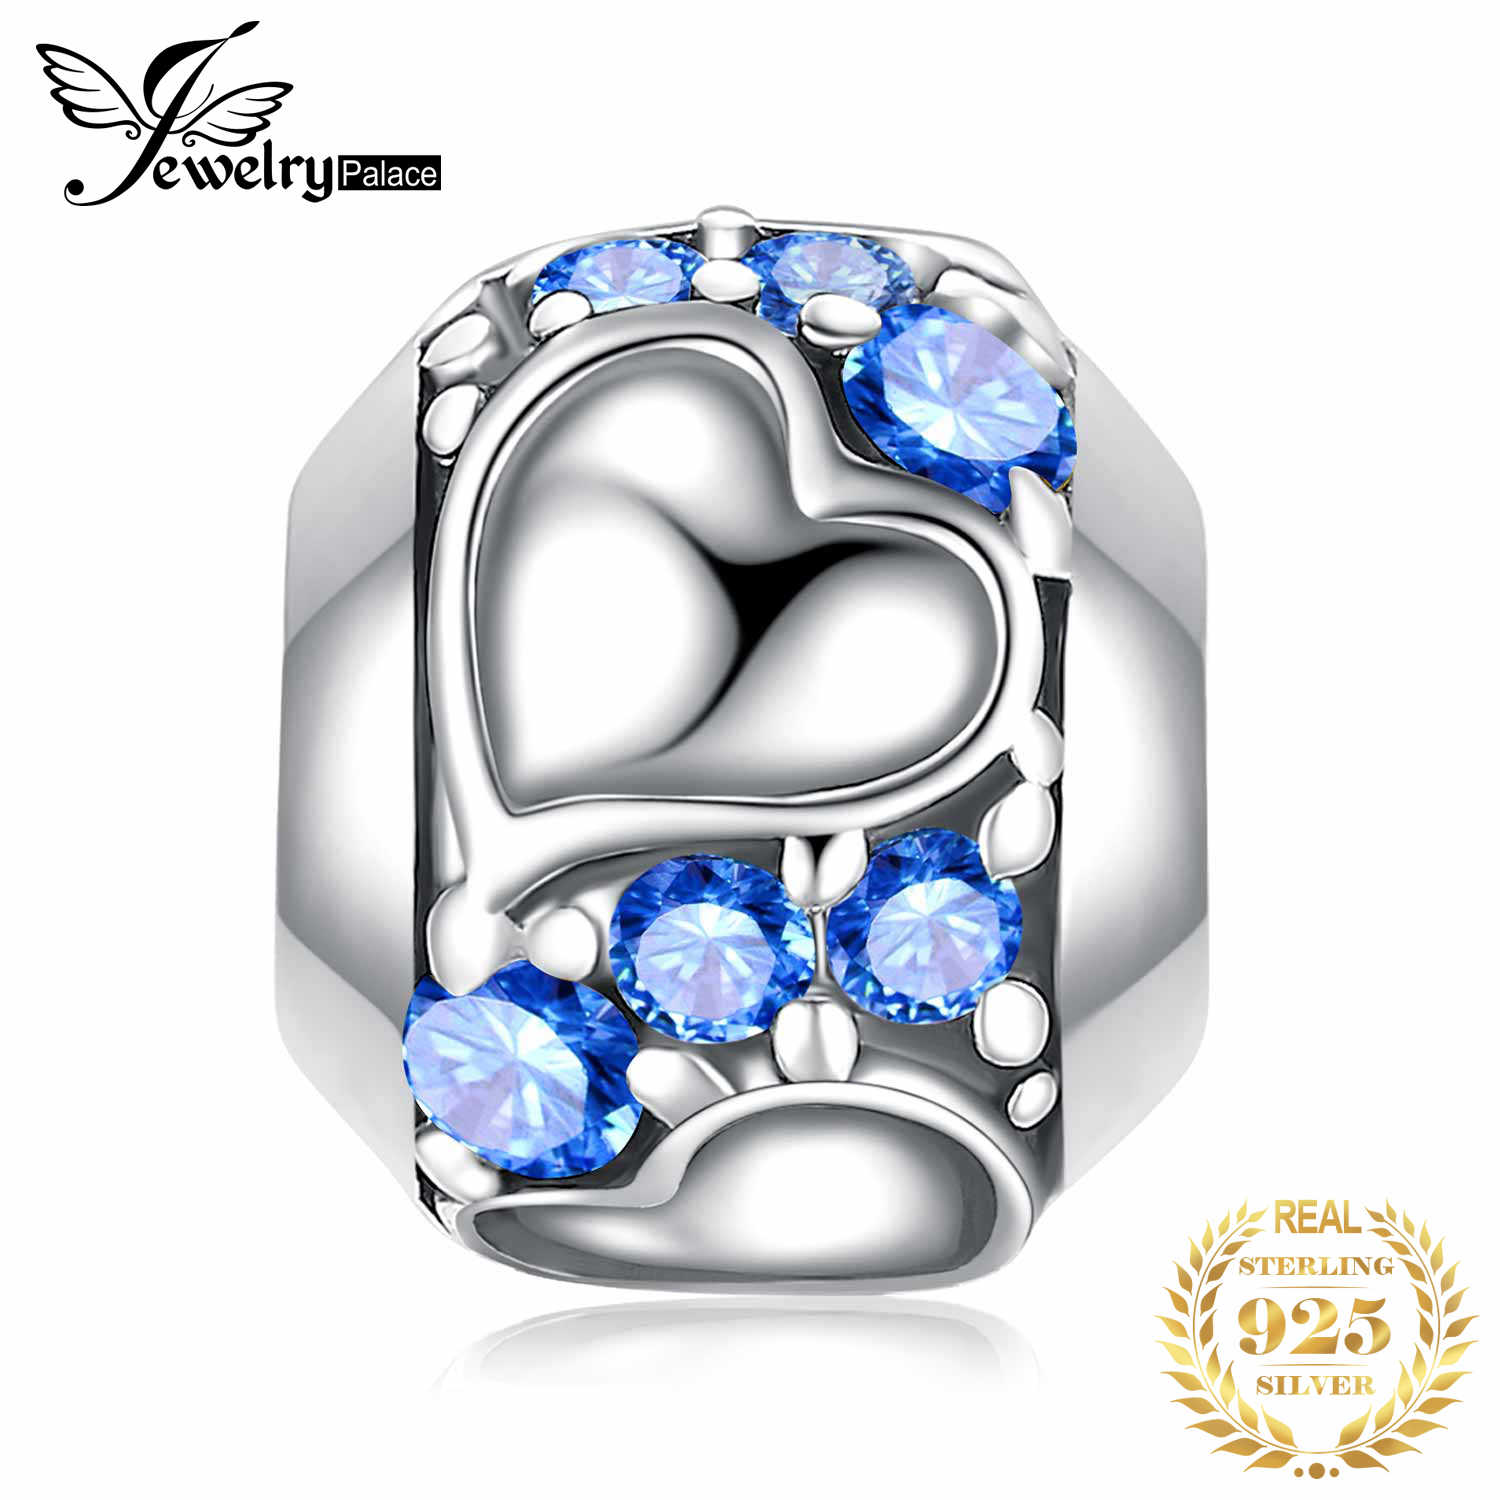 JewelryPalace Coração Fiel 0.4ct Azul Cubic Zirconia 925 Sterling Silver Charm Beads 2018 New Hot Sale Presentes Bonitos